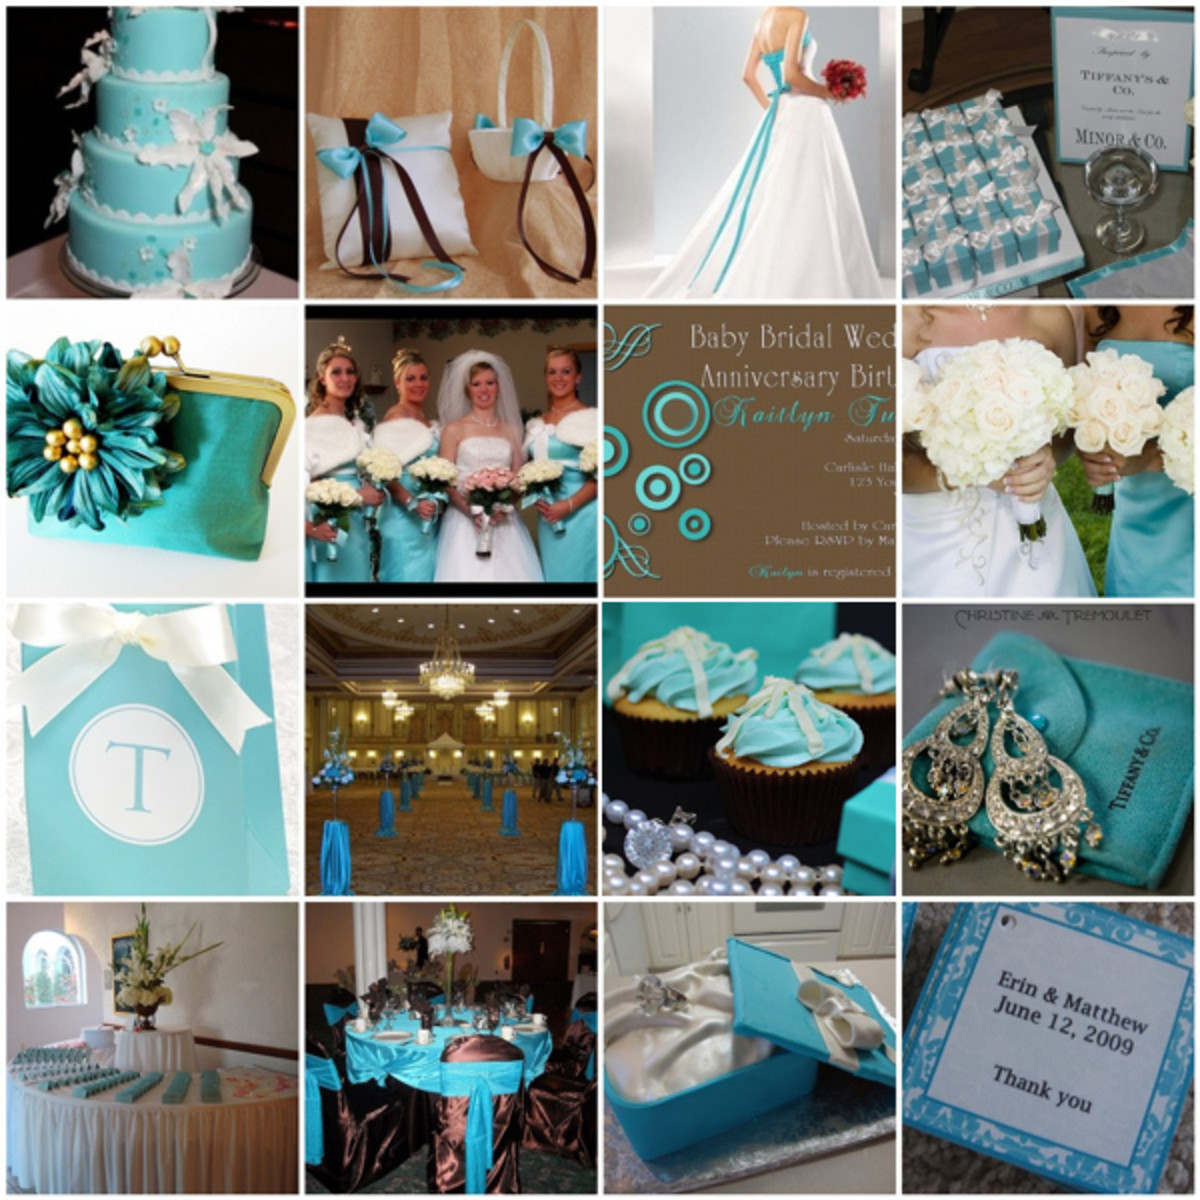 Chocolate Brown & Tiffany Blue Inspiration Board from Here Comes The Blog